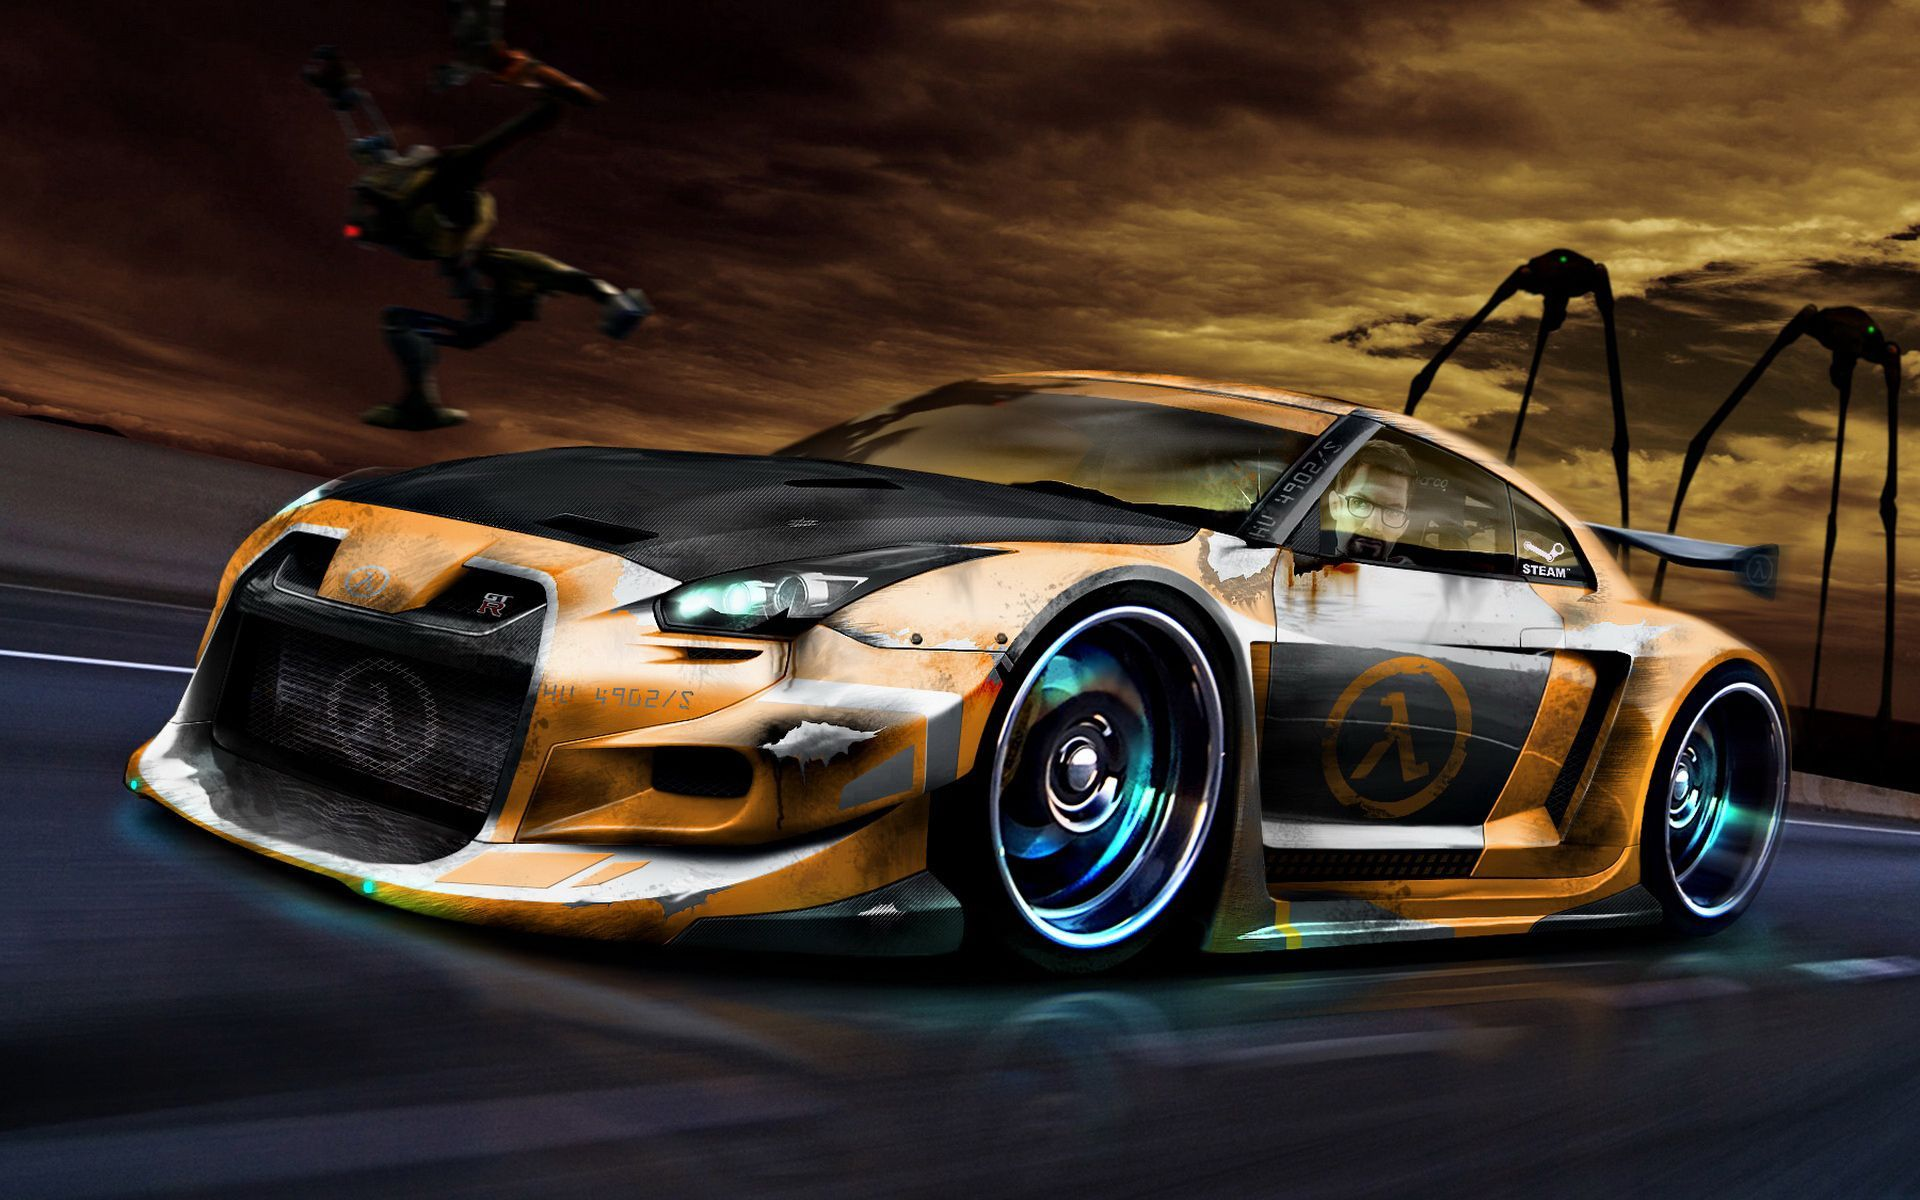 Visit Site To Download Cool Wallpapers Cars Street Racing Car Pics Cool Sports Car Wallpaper Auto Wal Street Racing Cars Car Wallpapers Sports Car Wallpaper